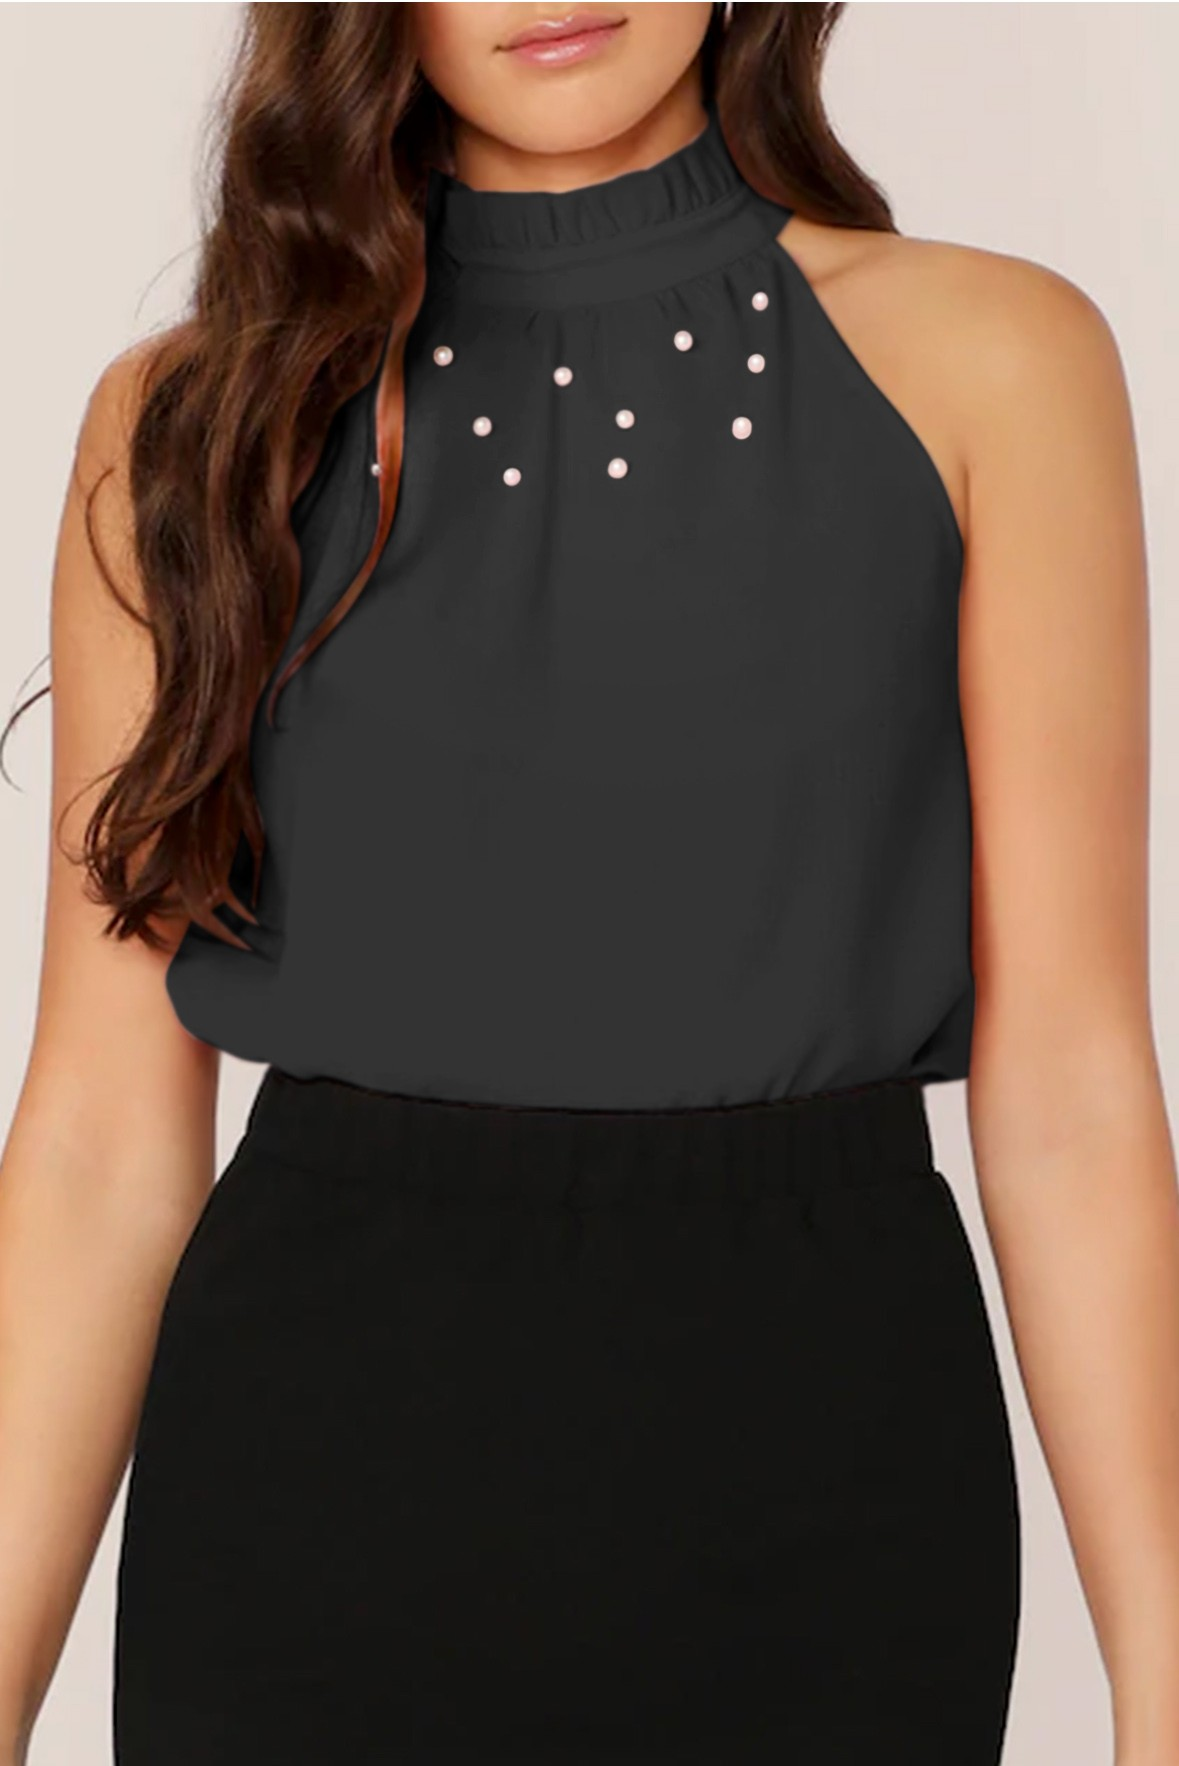 Frilled Neck Pearls Beaded Top Black